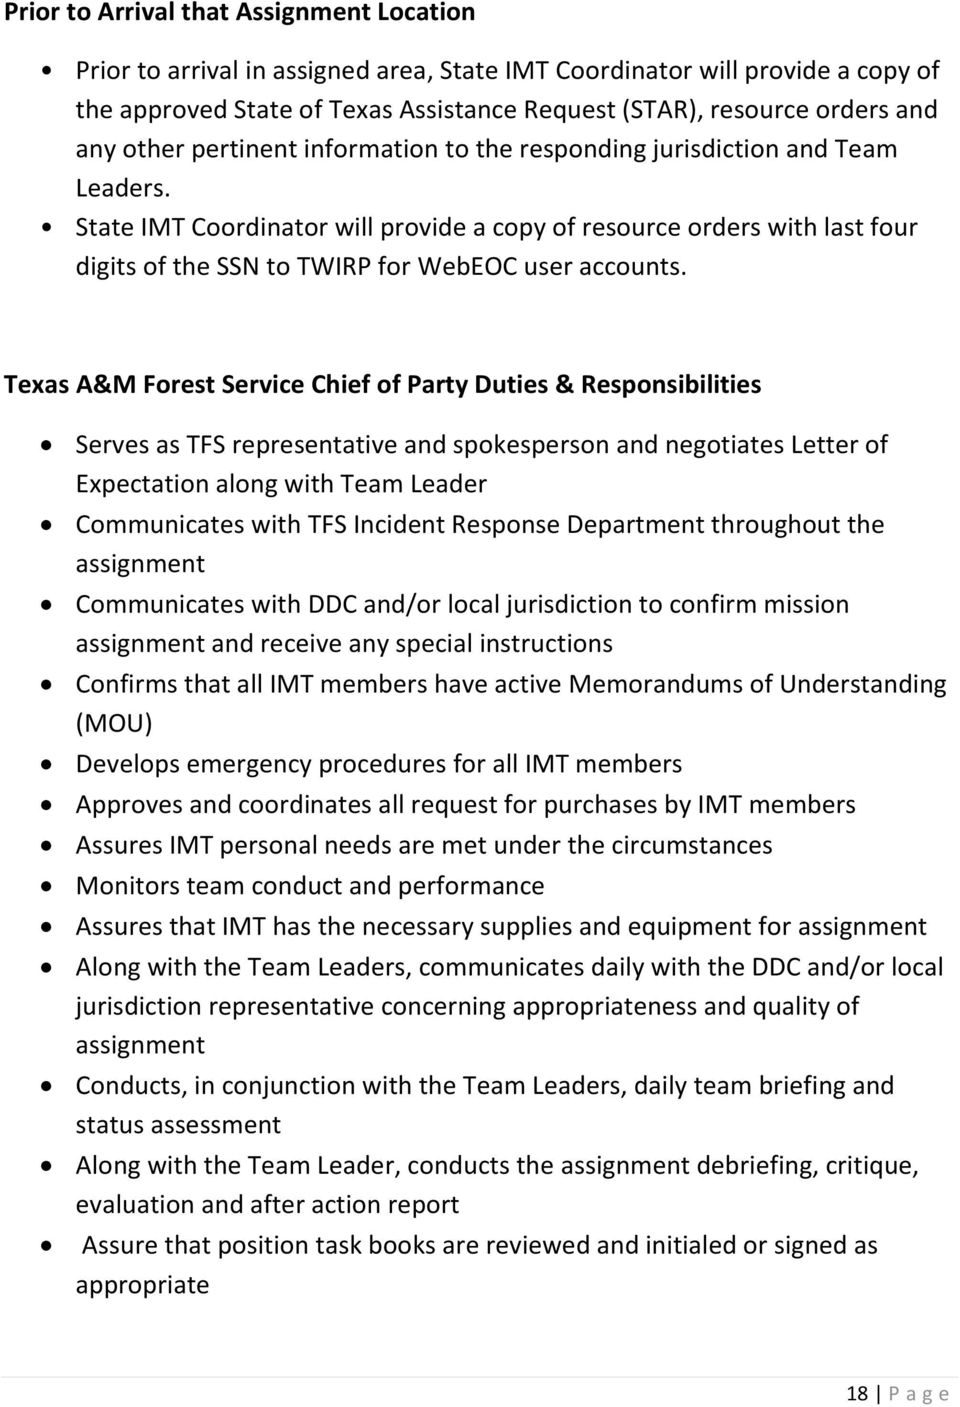 State IMT Coordinator will provide a copy of resource orders with last four digits of the SSN to TWIRP for WebEOC user accounts.